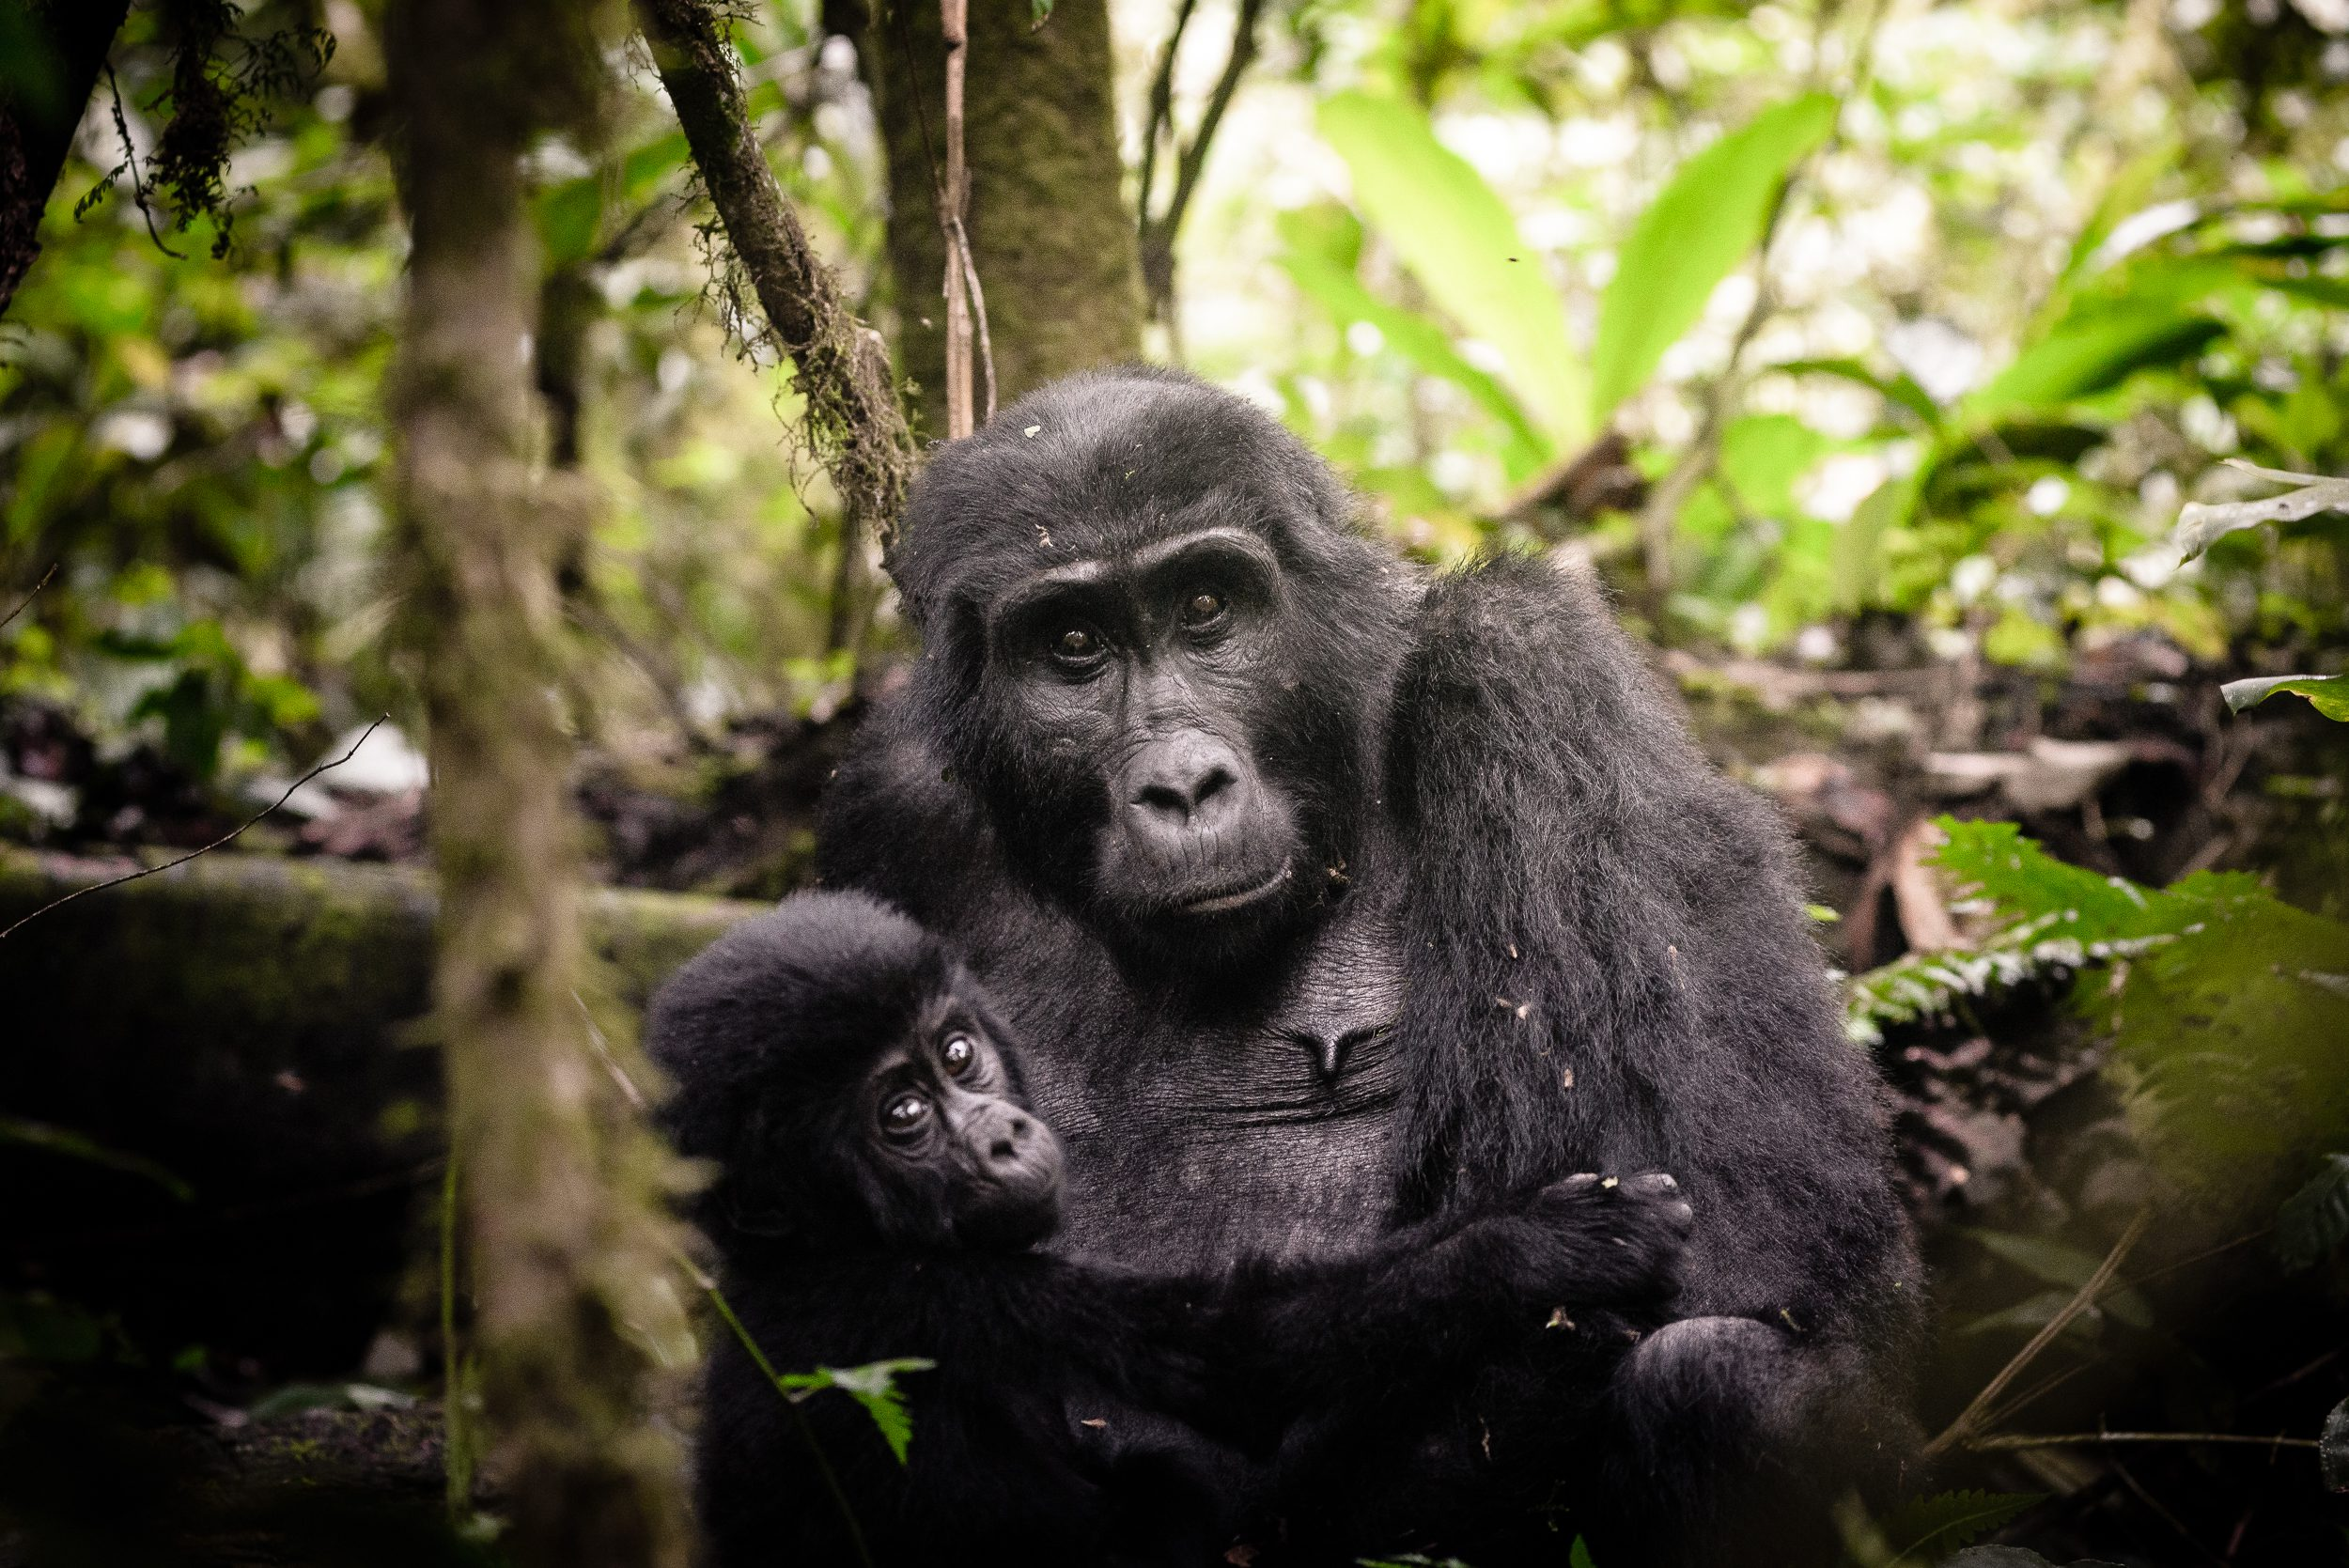 A baby gorilla clutches to its mother in the rainforests of Uganda.